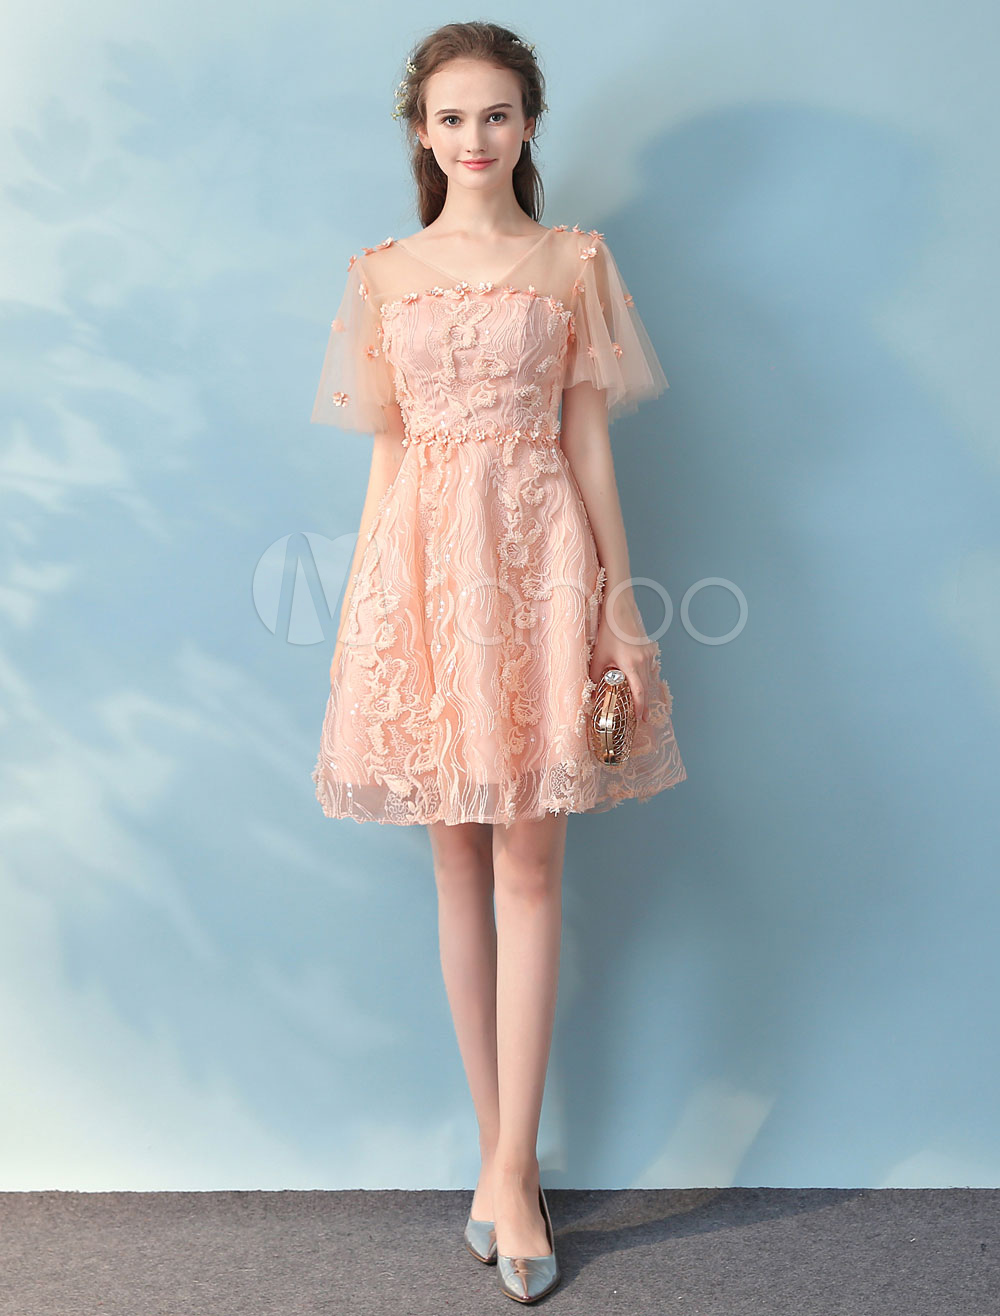 Peach Homecoming Dress Lace Short Prom Dresses V Neck Butterfly Sleeve Backless Flower Deco A Line Knee Length Cocktail Dress (Wedding) photo